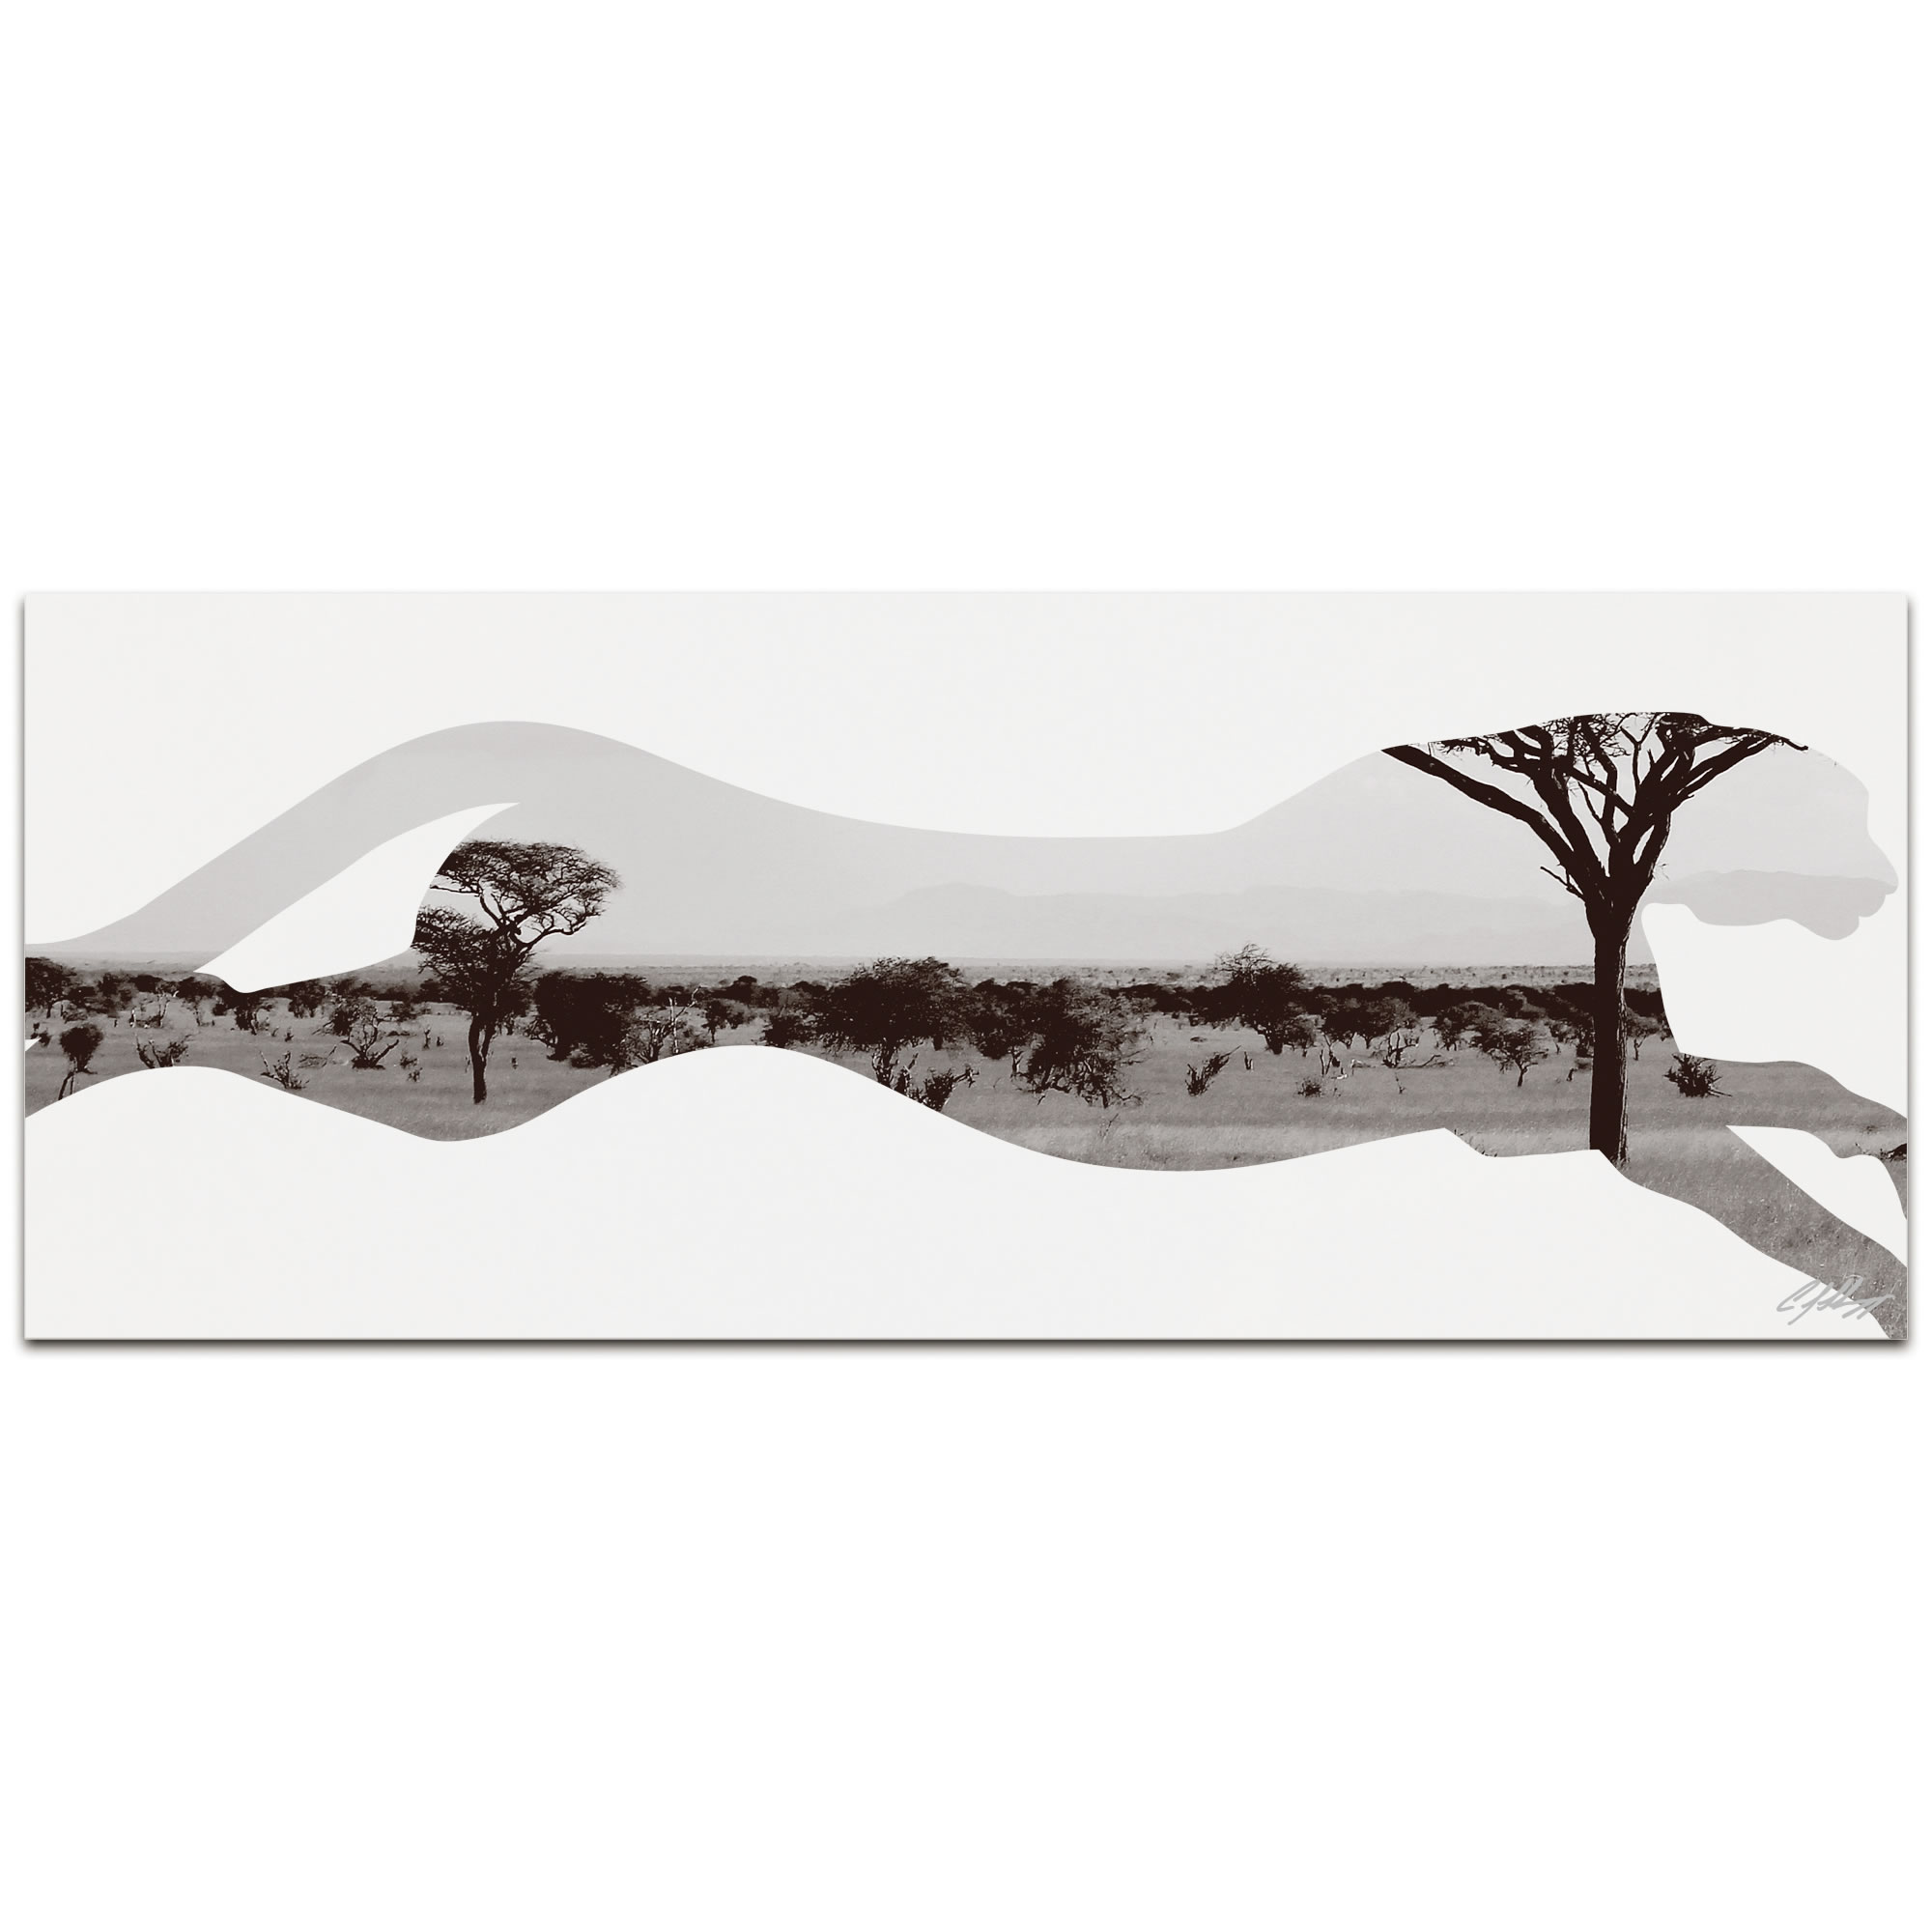 CHEETAH SAVANNA - 48x19 in. Metal Animal Print